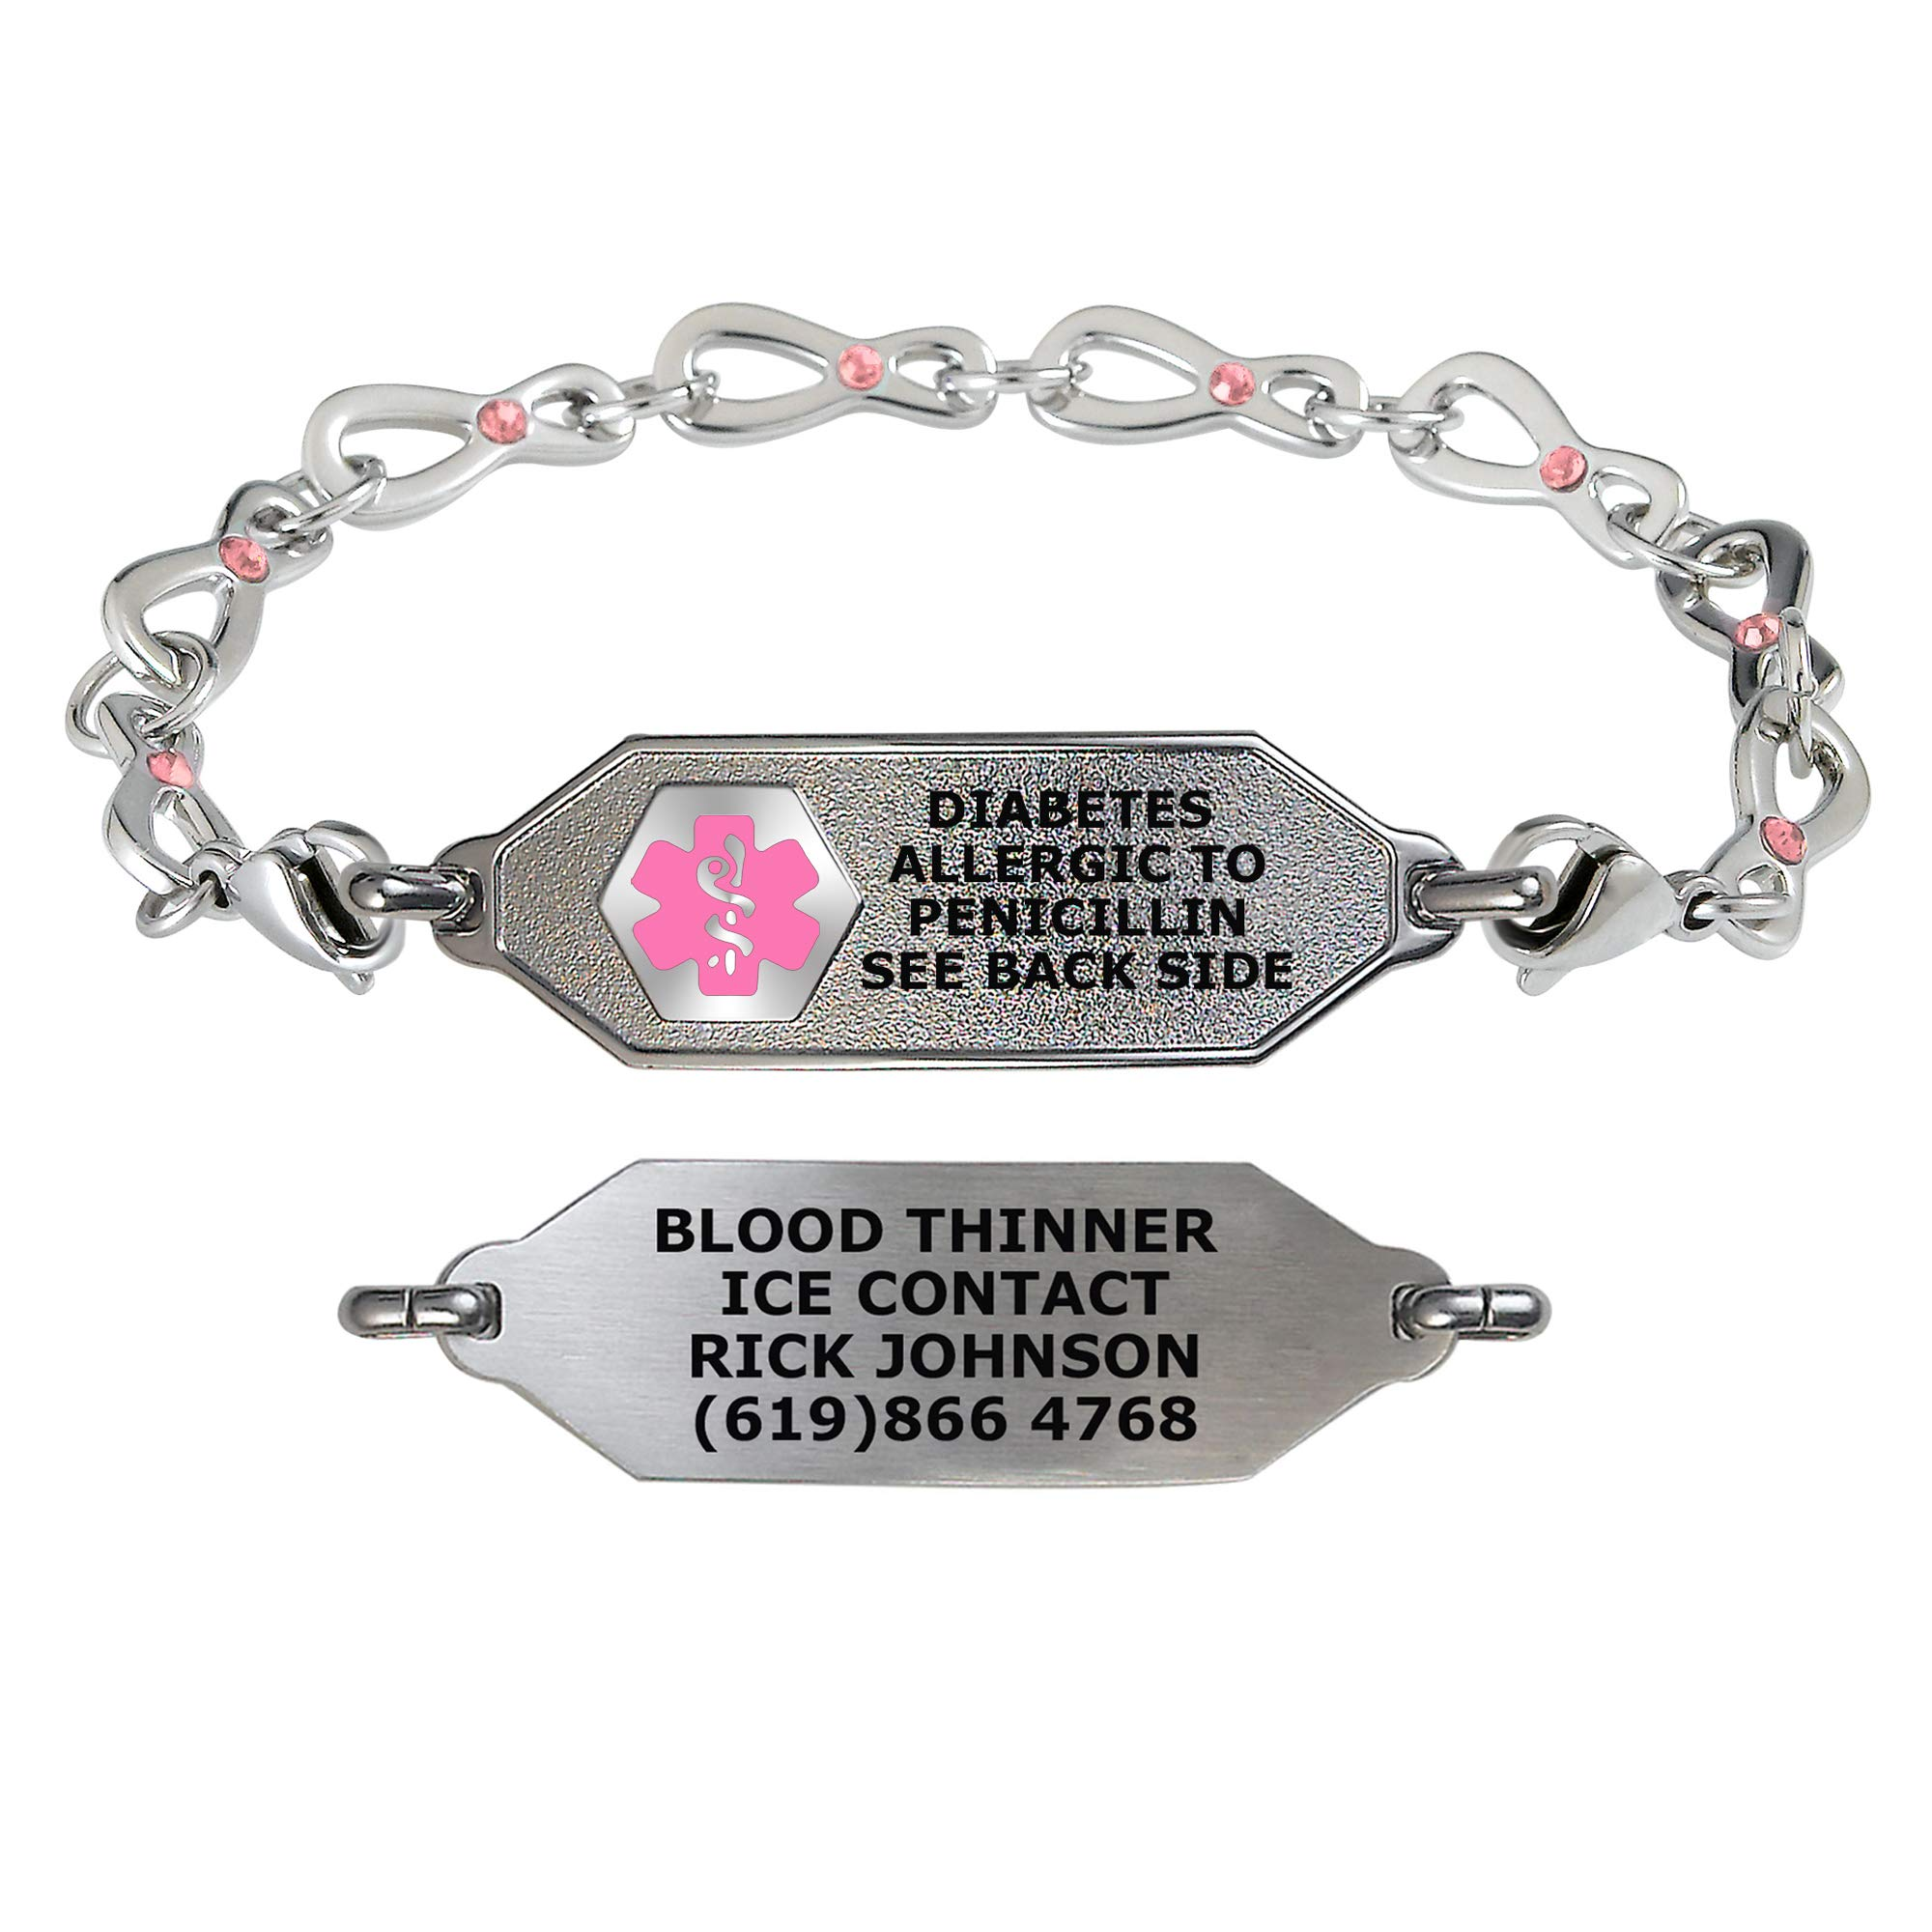 Divoti Custom Engraved Medical Alert Bracelets for Women, Stainless Steel Medical Bracelet, Medical ID Bracelet w/Free Engraving – Small Classic Tag w/Infinity Rose Crystal Chain – Color/Size